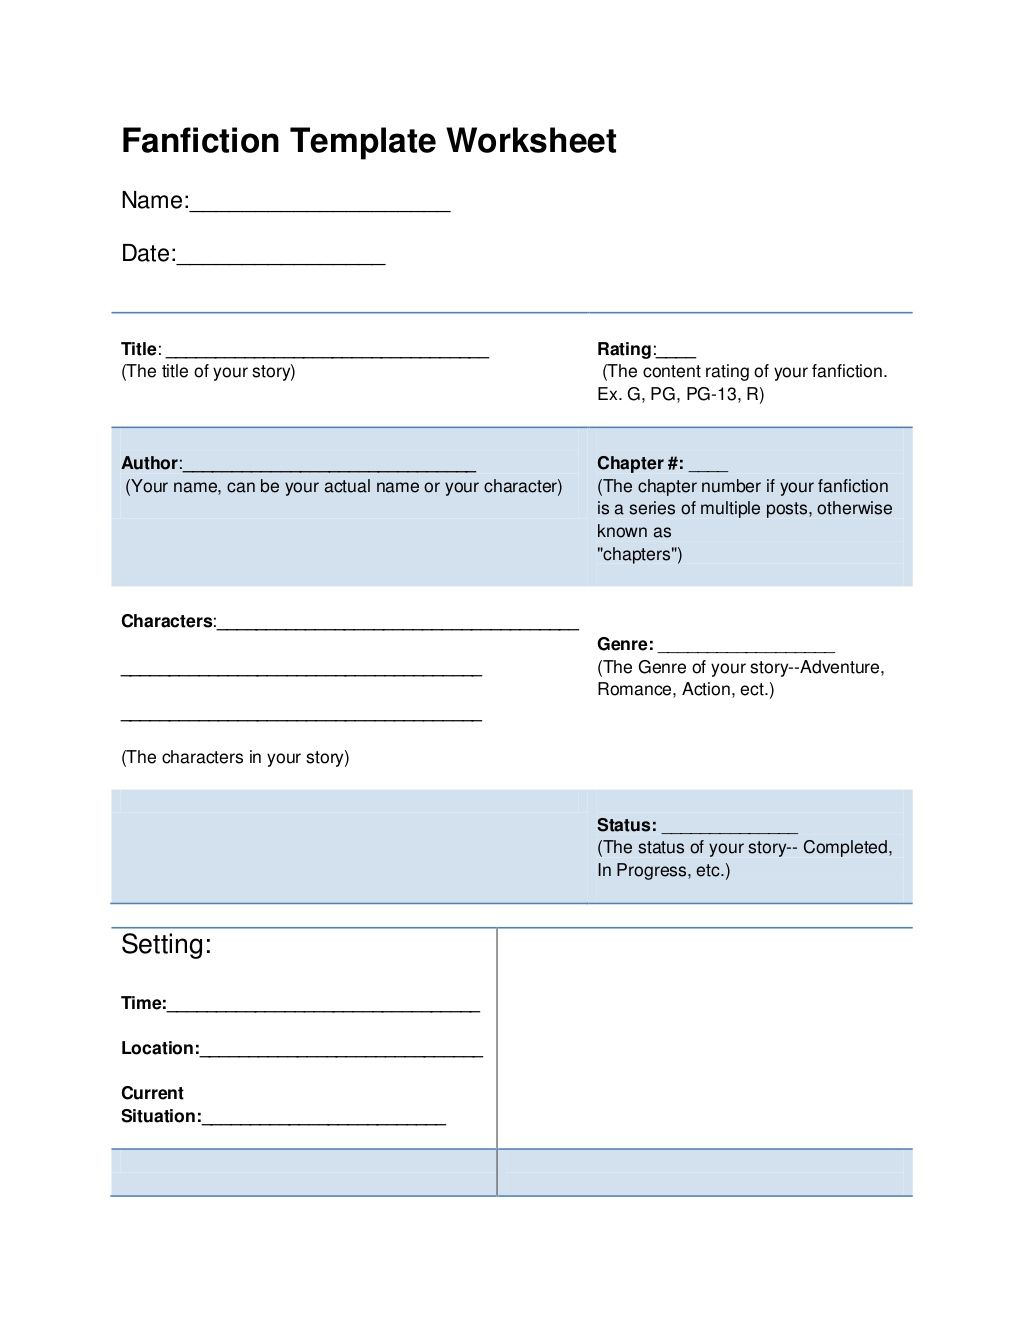 Fanfiction Template Worksheet By Jirojima Via Slideshare